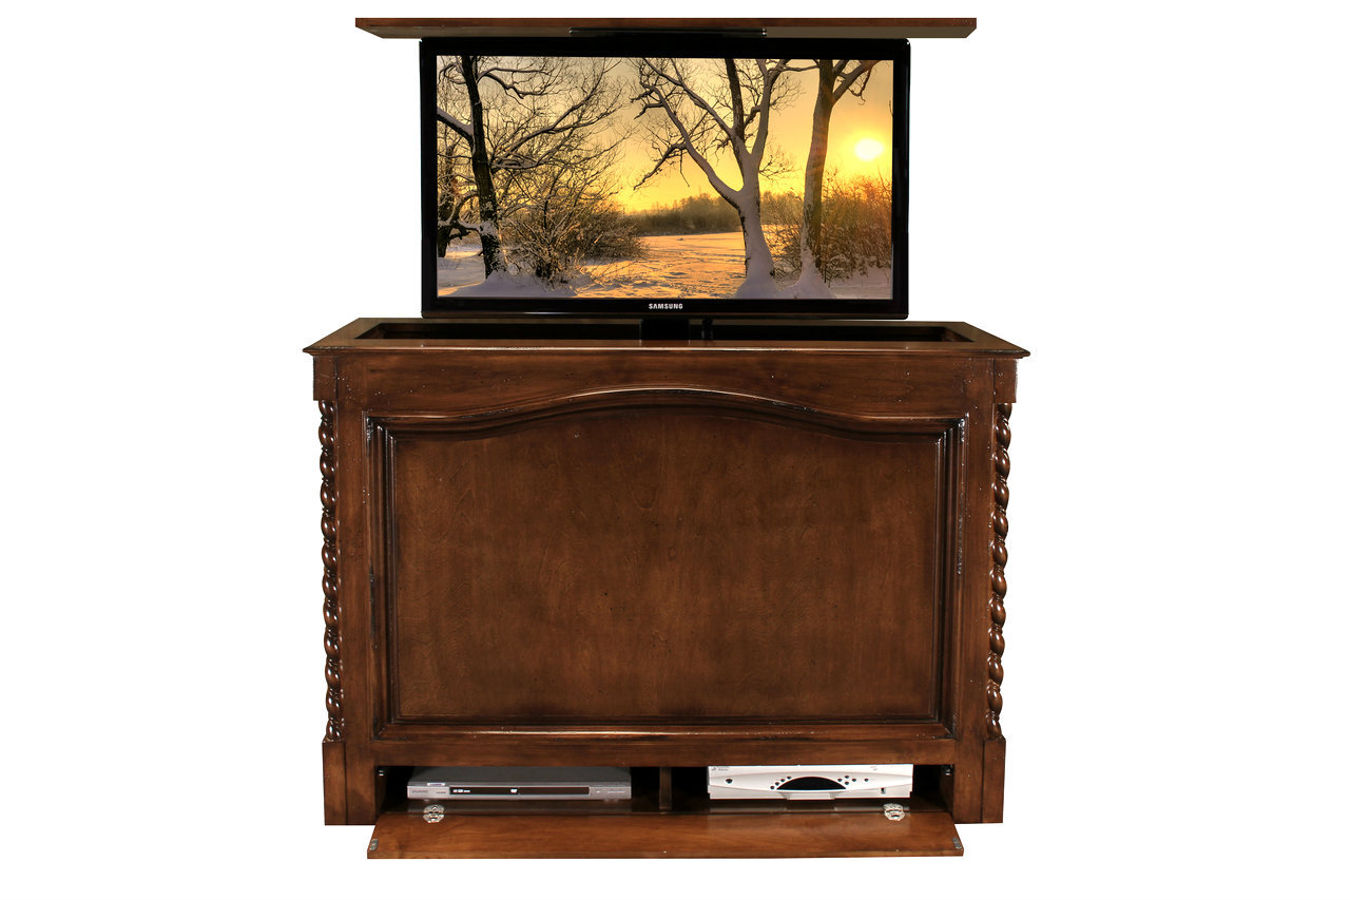 Coronado Antique Caramel Motorized TV Stand Comes In 19 Other Finishes